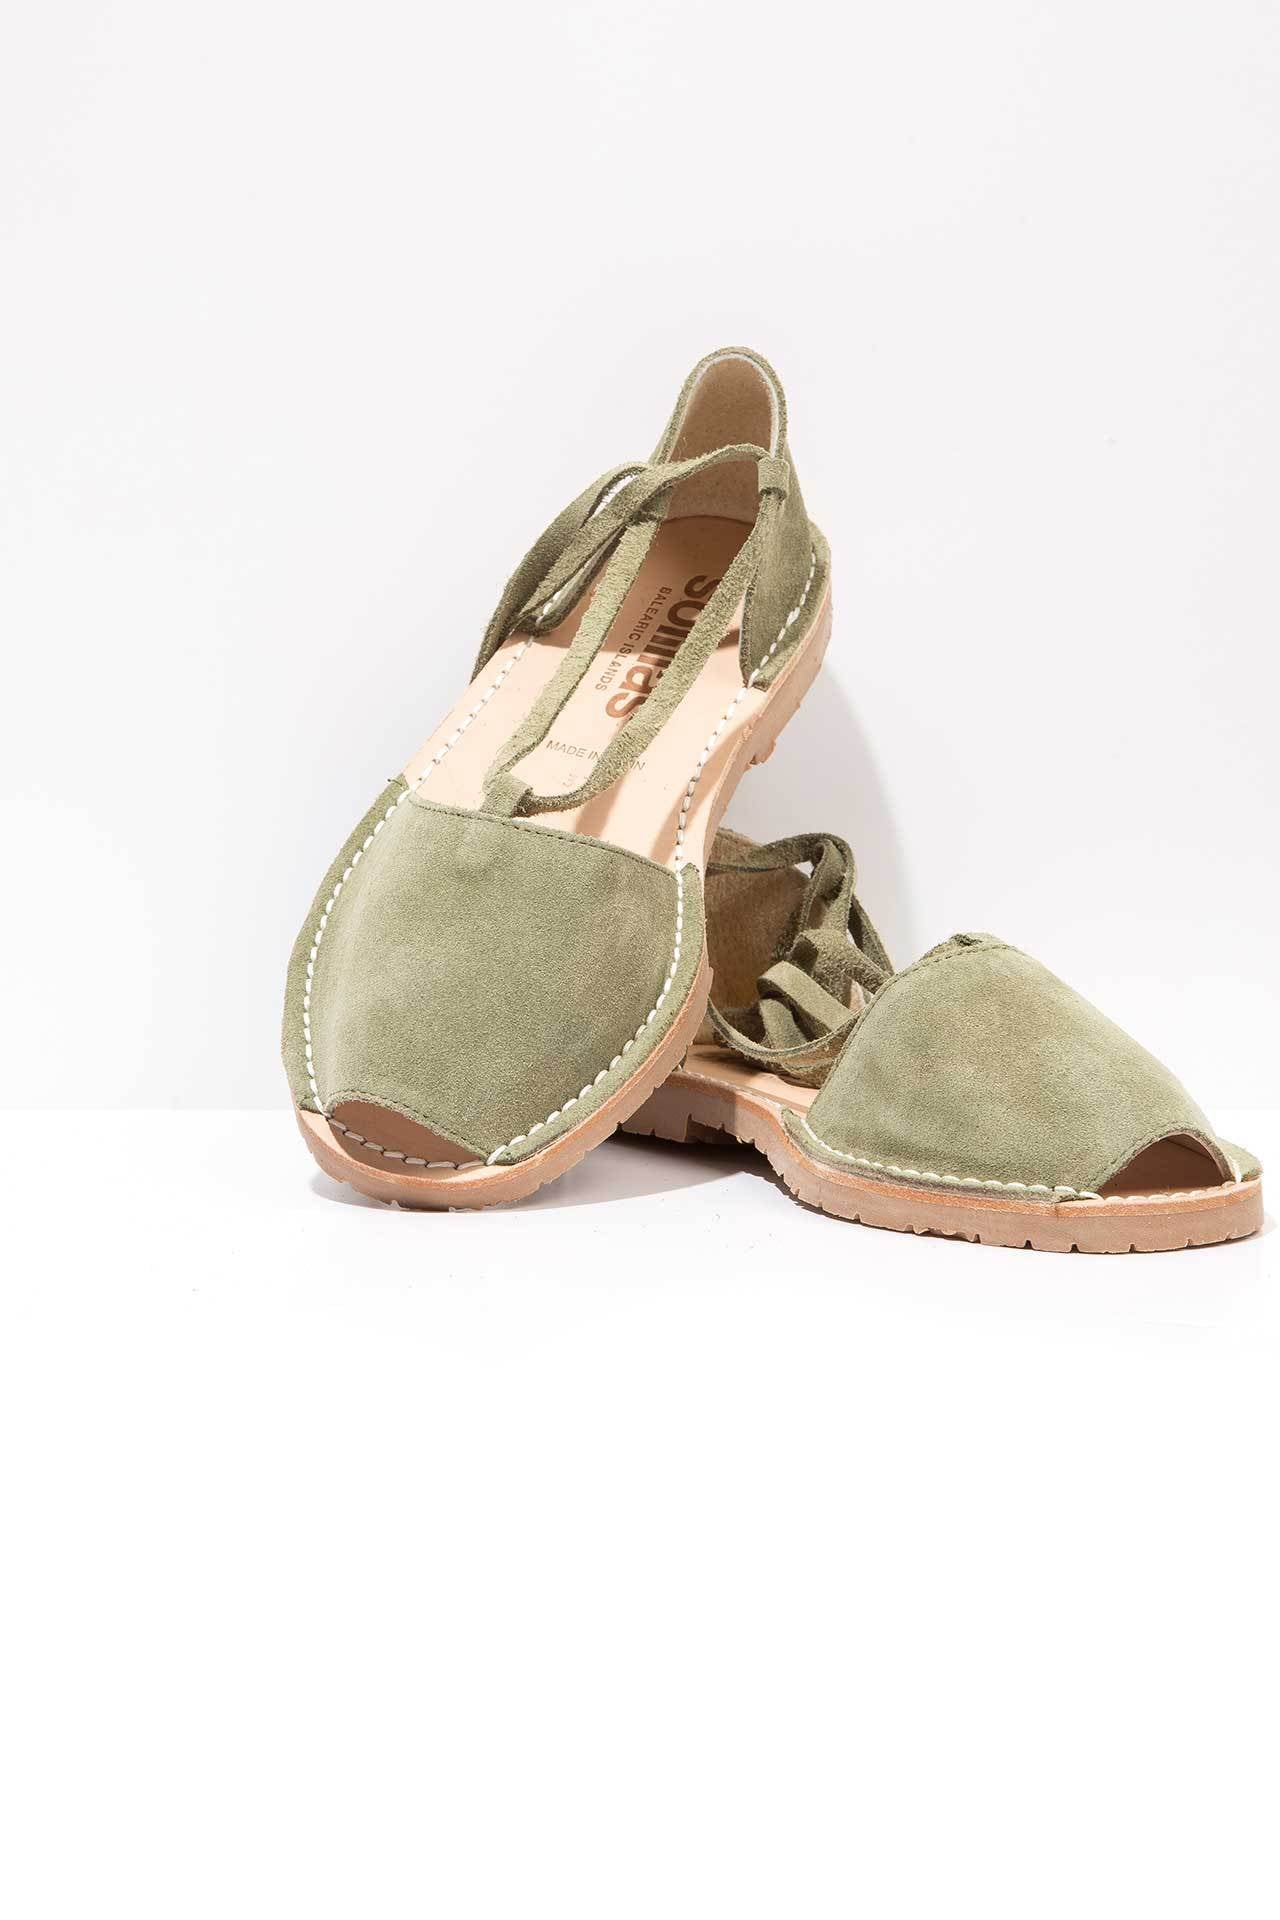 Solillas Exclusive Khaki Suede Ankle Tie Menorcan Sandals